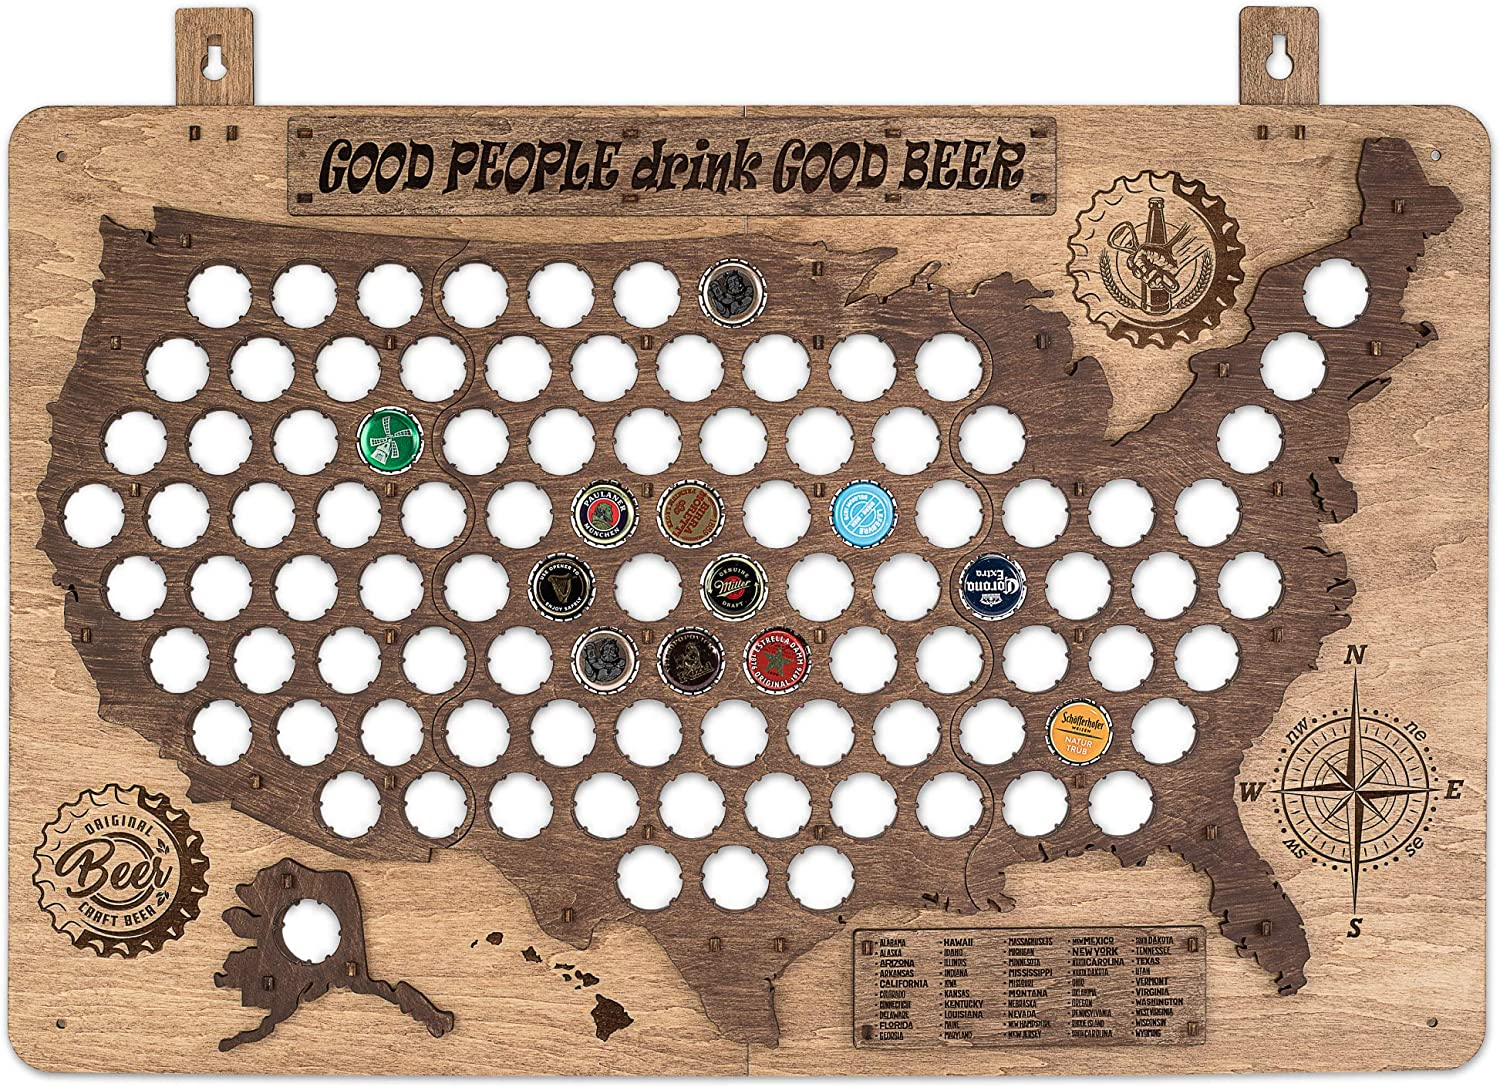 PLYDOLEX Wooden United States Beer Cap Map for 98 Beer Bottle Caps - Wall Beer Cap Holder Size 19 x 26 inch - Ideal as Fathers Day Gifts or Man Cave Wall Decor - Brown Color